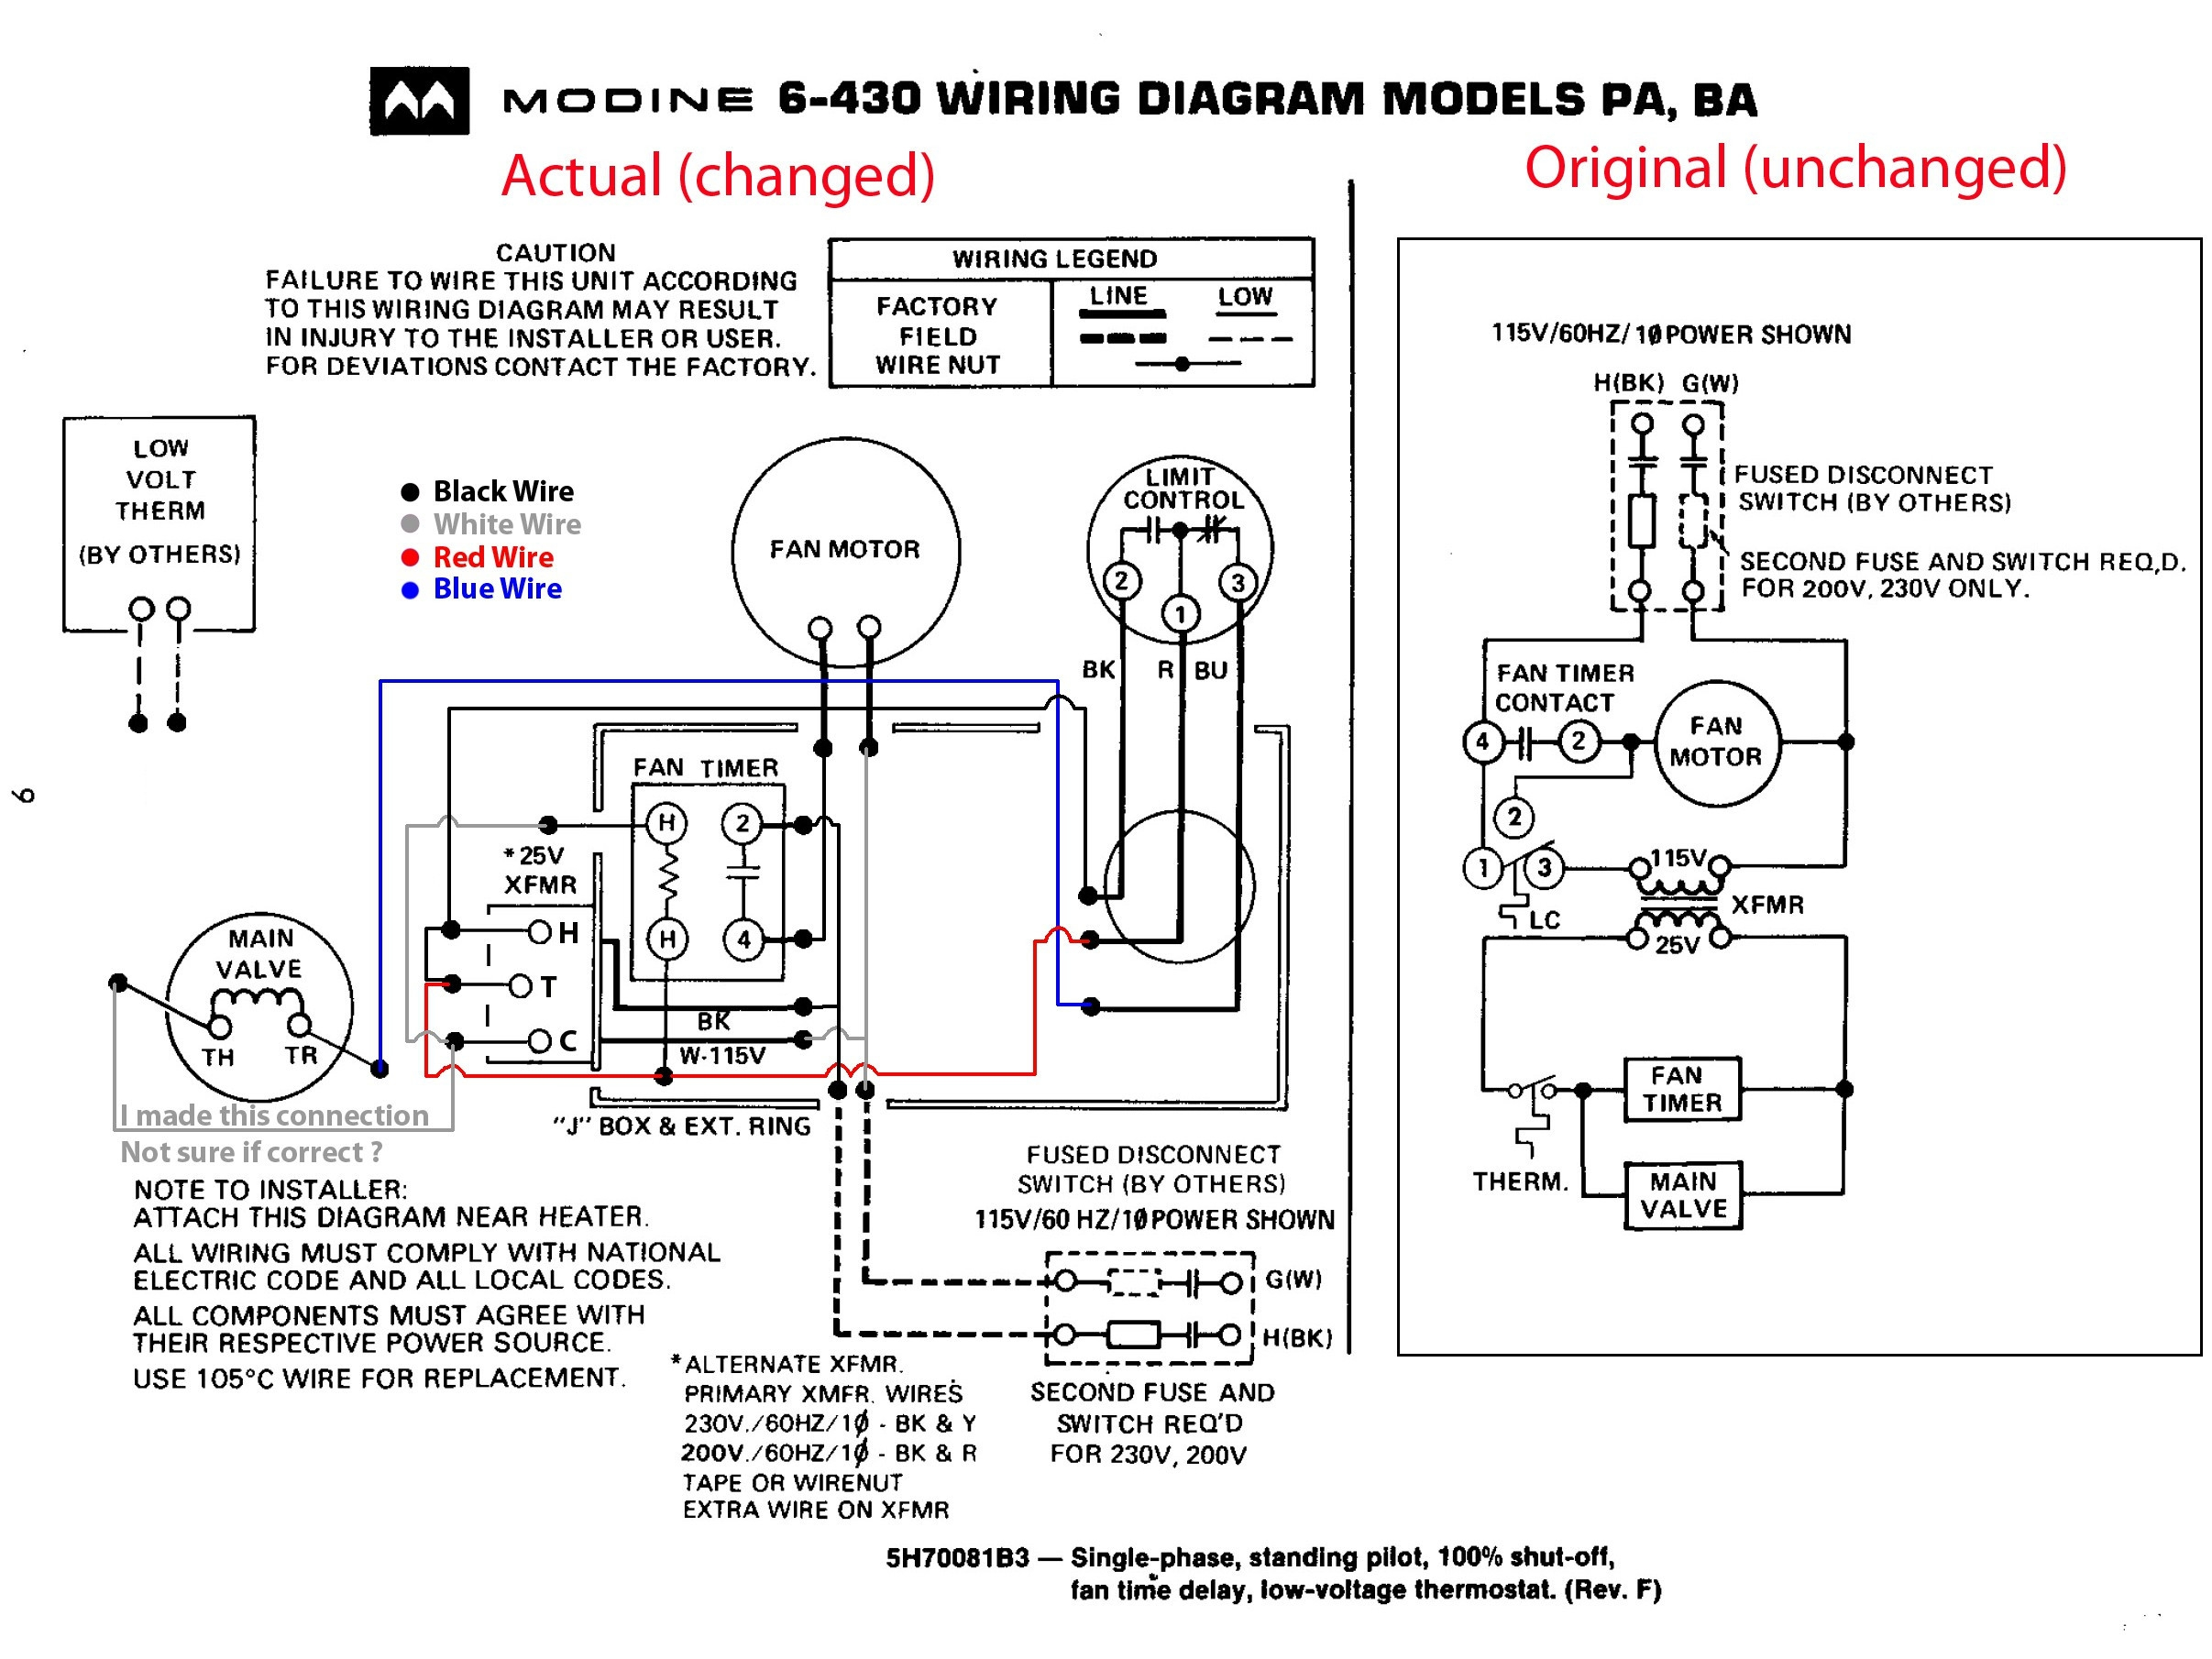 b cat 5 cable wiring diagram